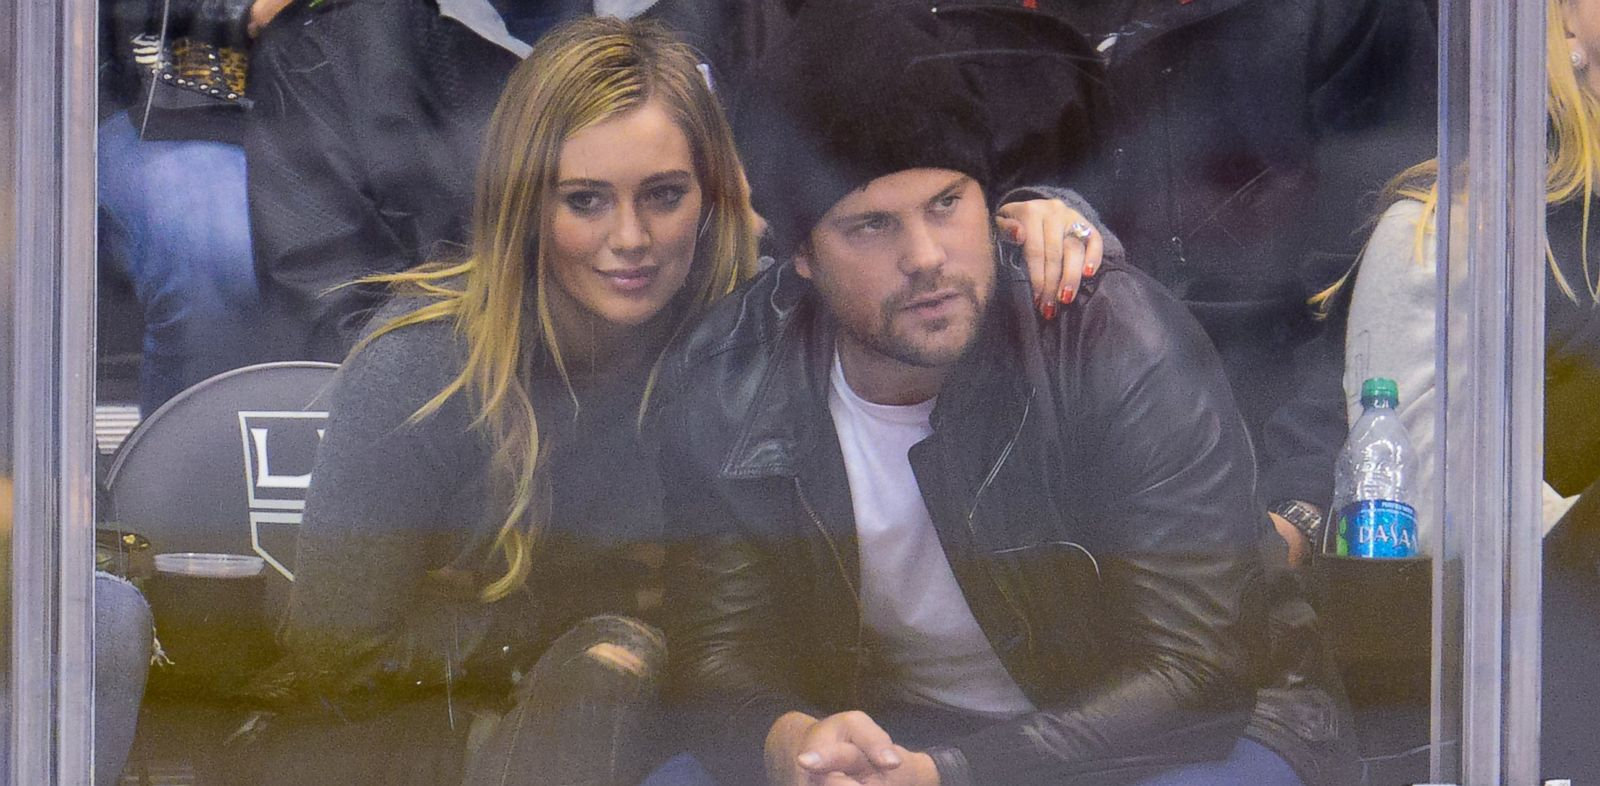 PHOTO: Hilary Duff and Mike Comrie are seen in this Nov. 2, 2013 file photo attending a hockey game at the Staples Center in Los Angeles, Calif.